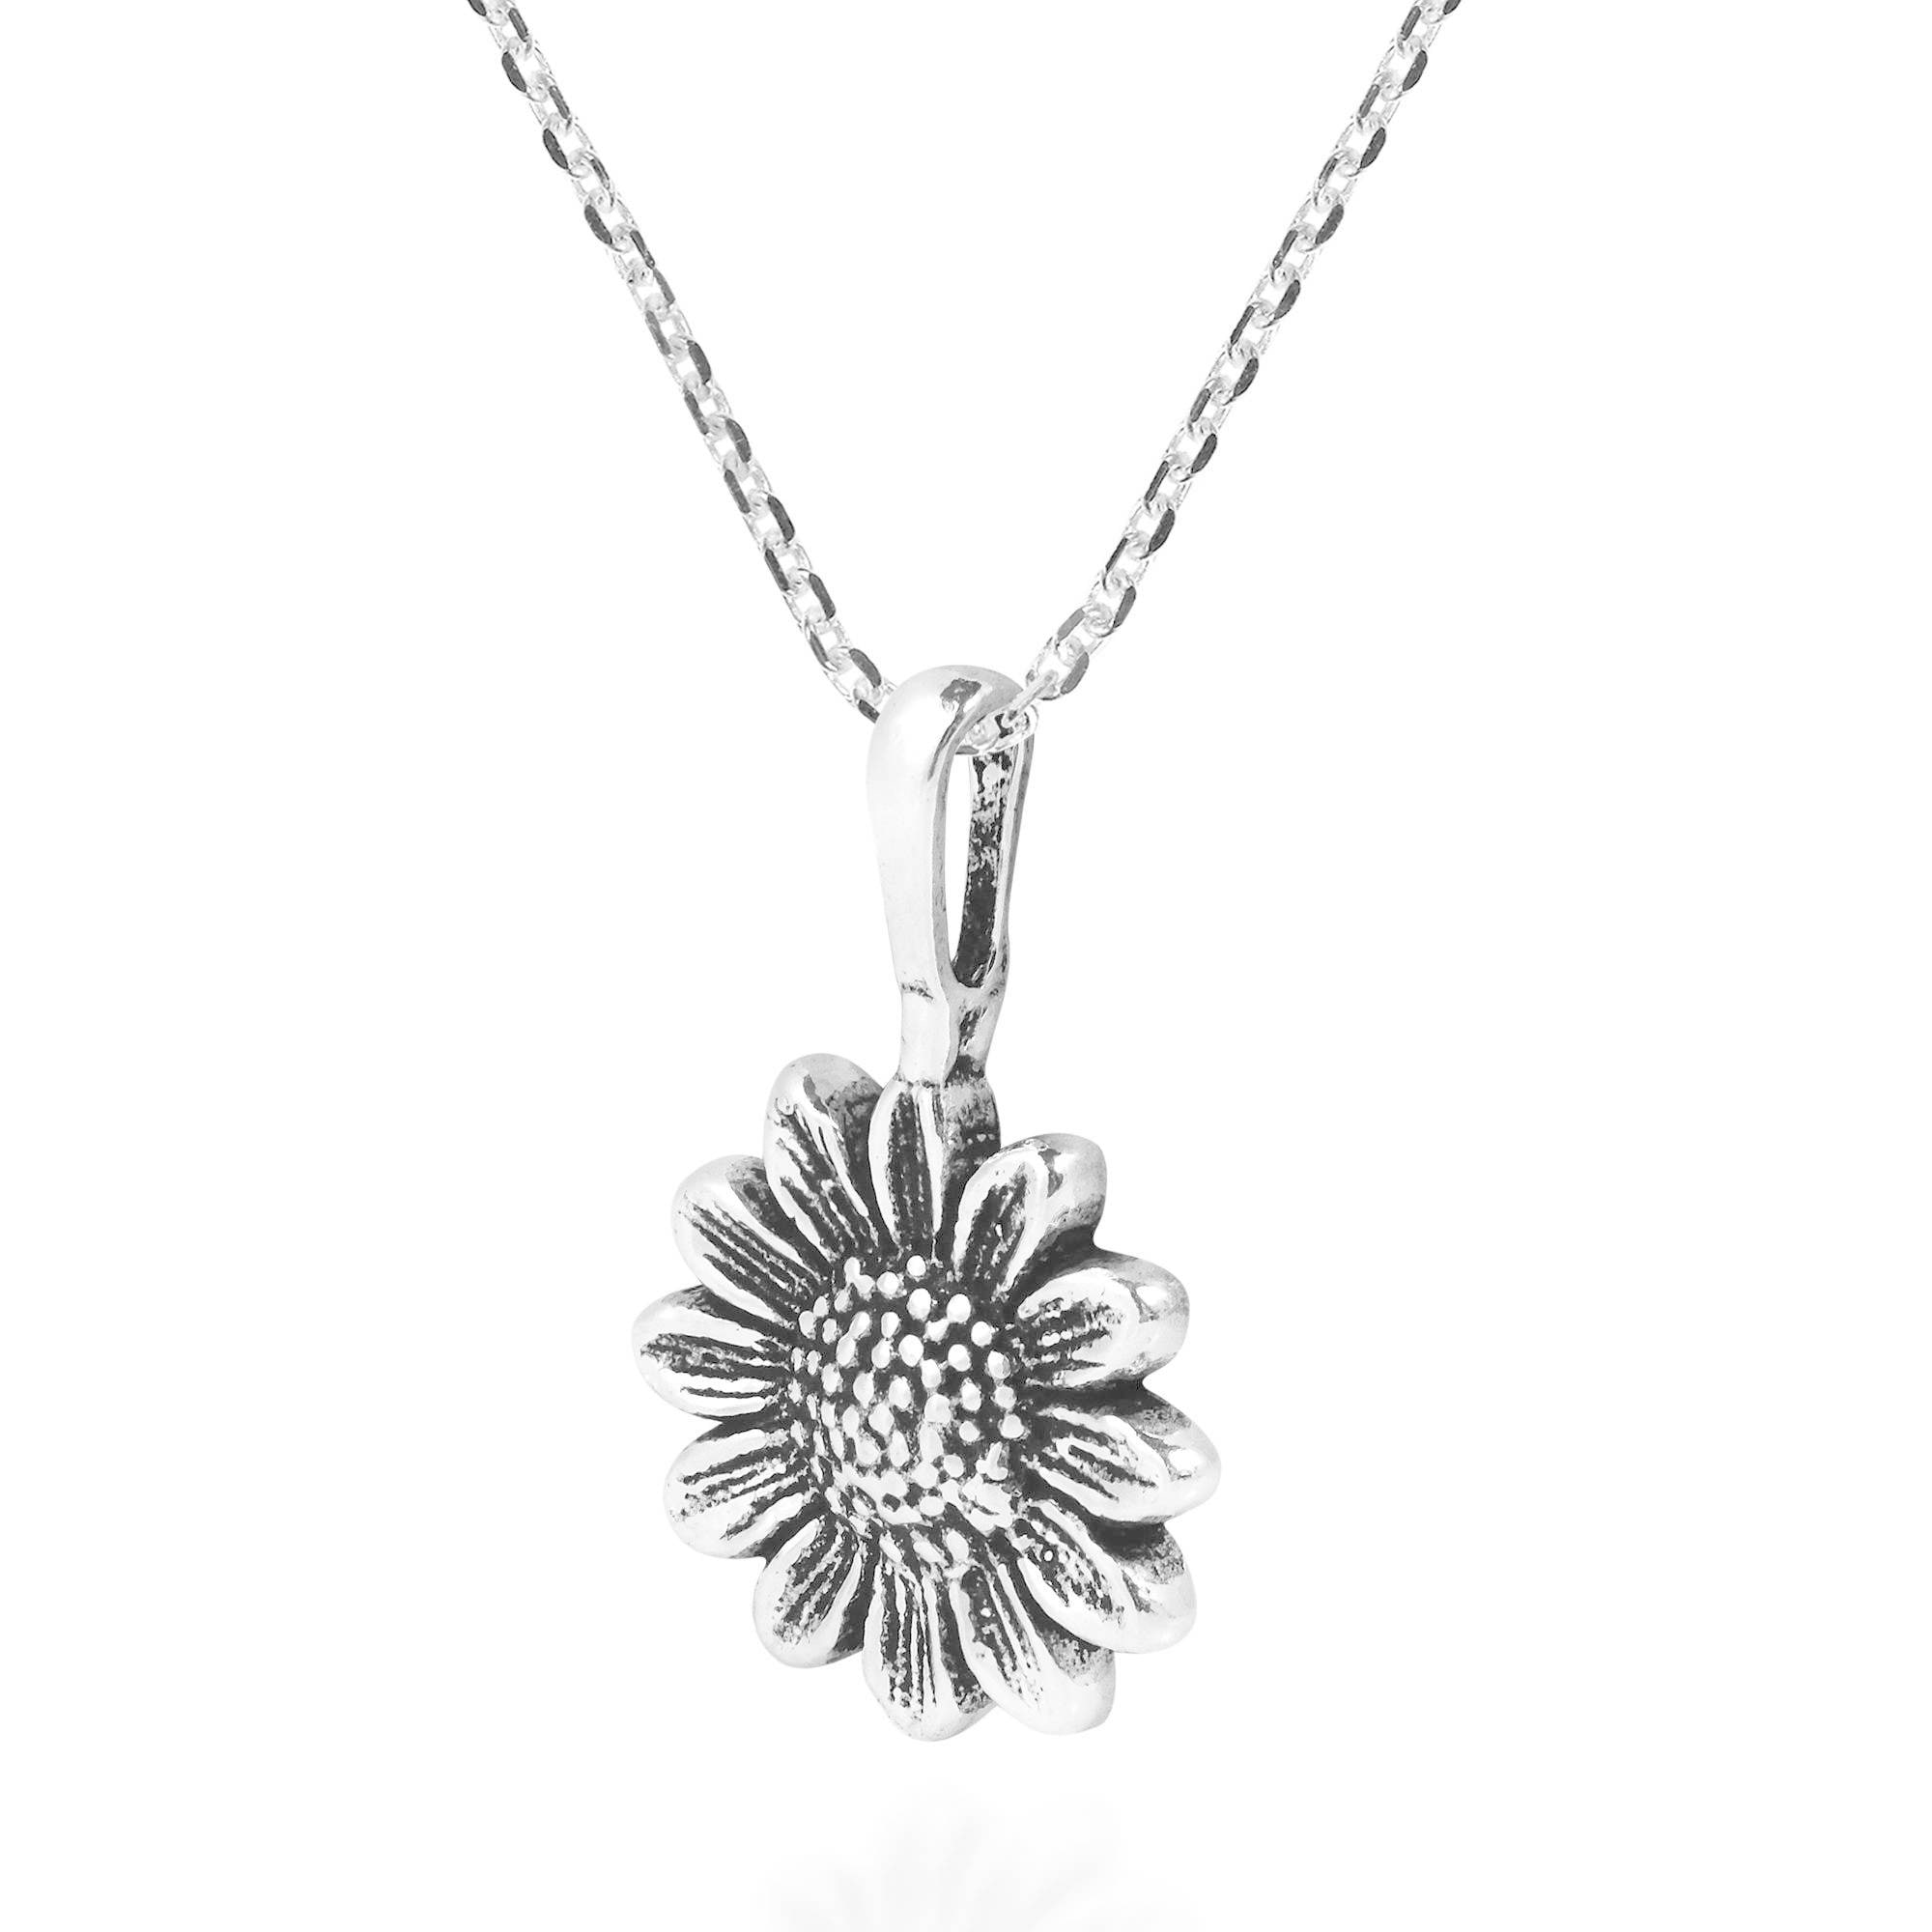 Handmade Enchanting Sunflower Sterling Silver Pendant Necklace Thailand Overstock 11383553 Give one to that special someone who's the warmth and happiness. handmade enchanting sunflower sterling silver pendant necklace thailand